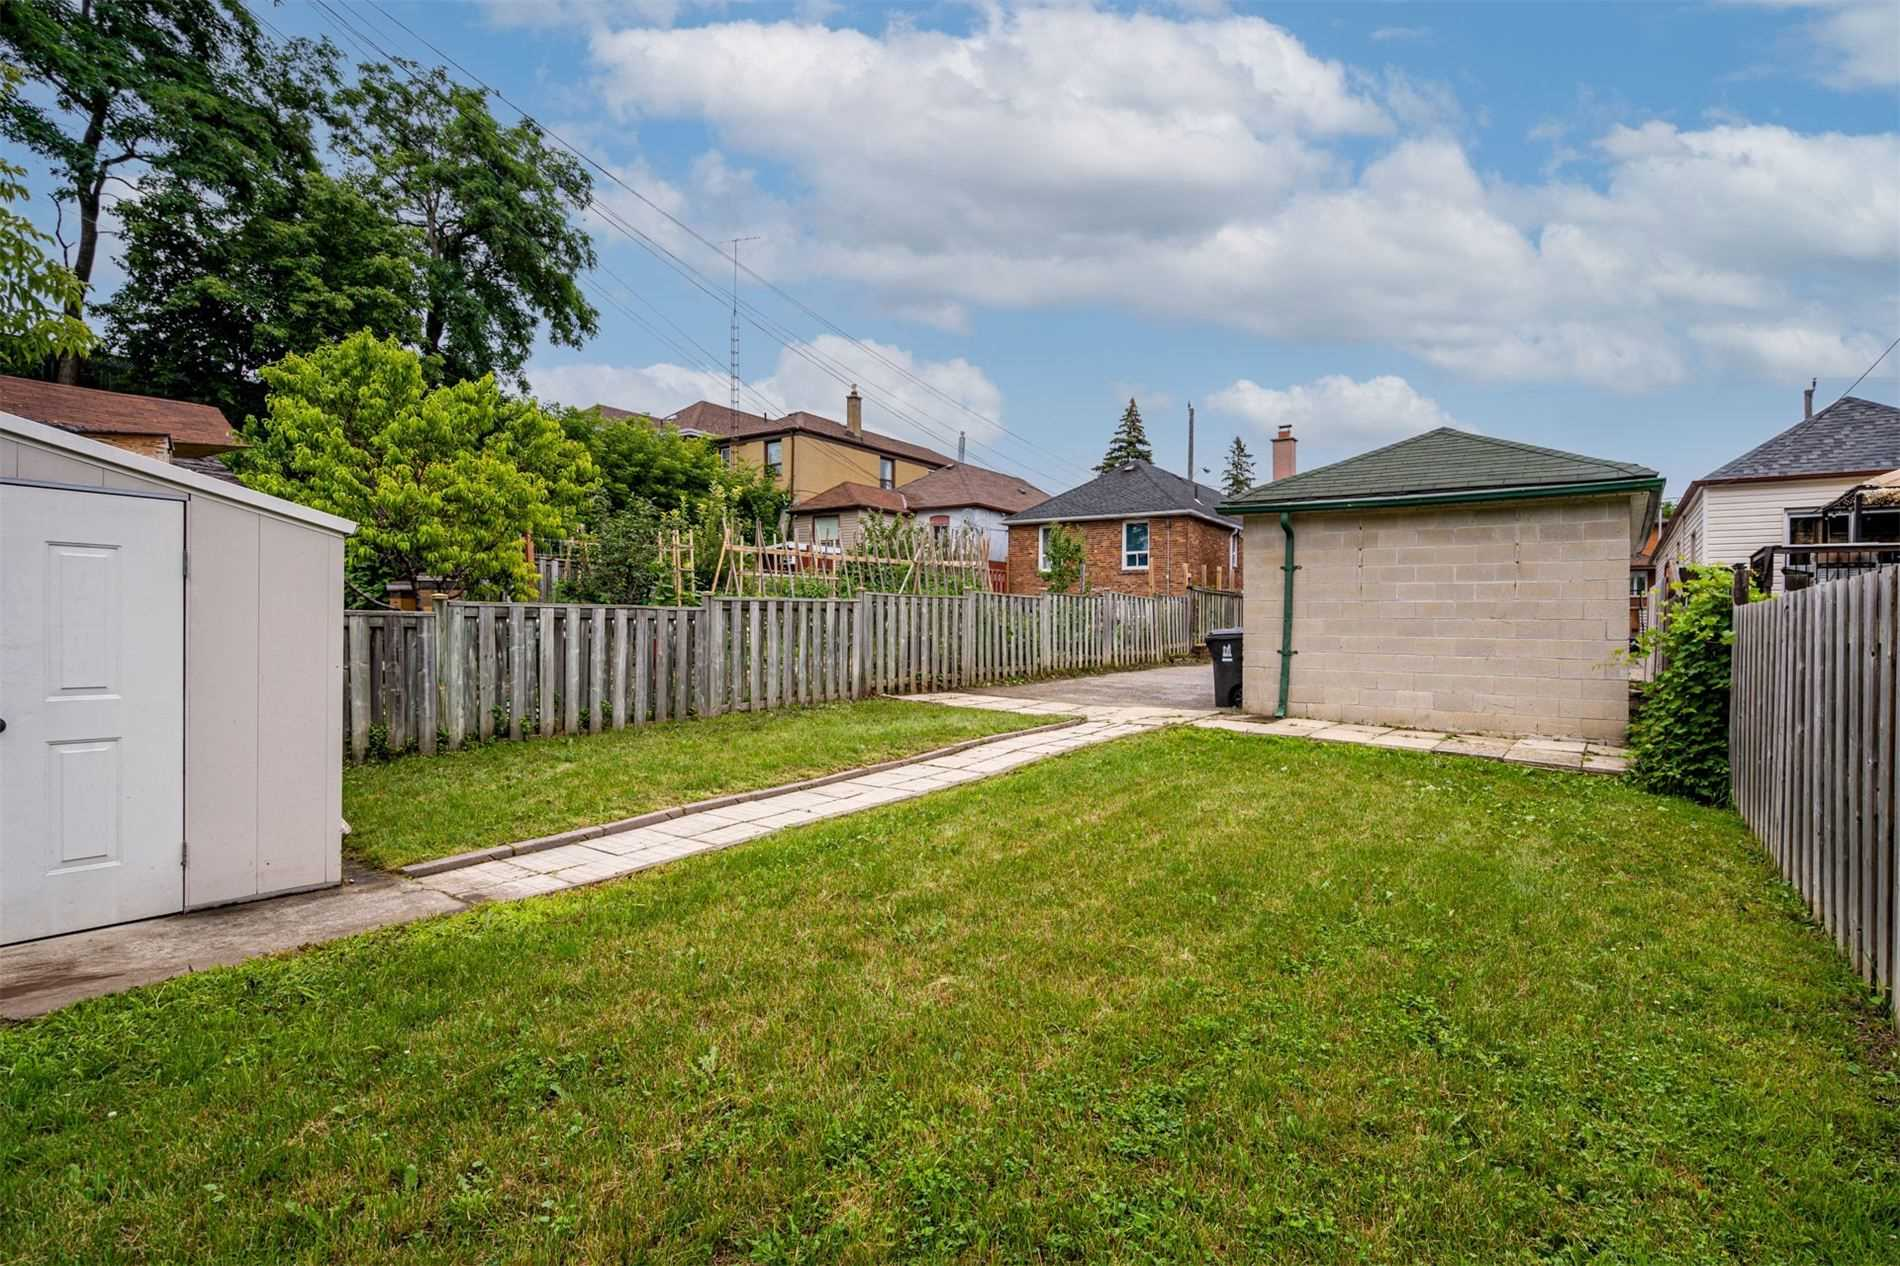 554 Caledonia Rd - Caledonia-Fairbank Detached for sale, 2 Bedrooms (W5305900) - #34